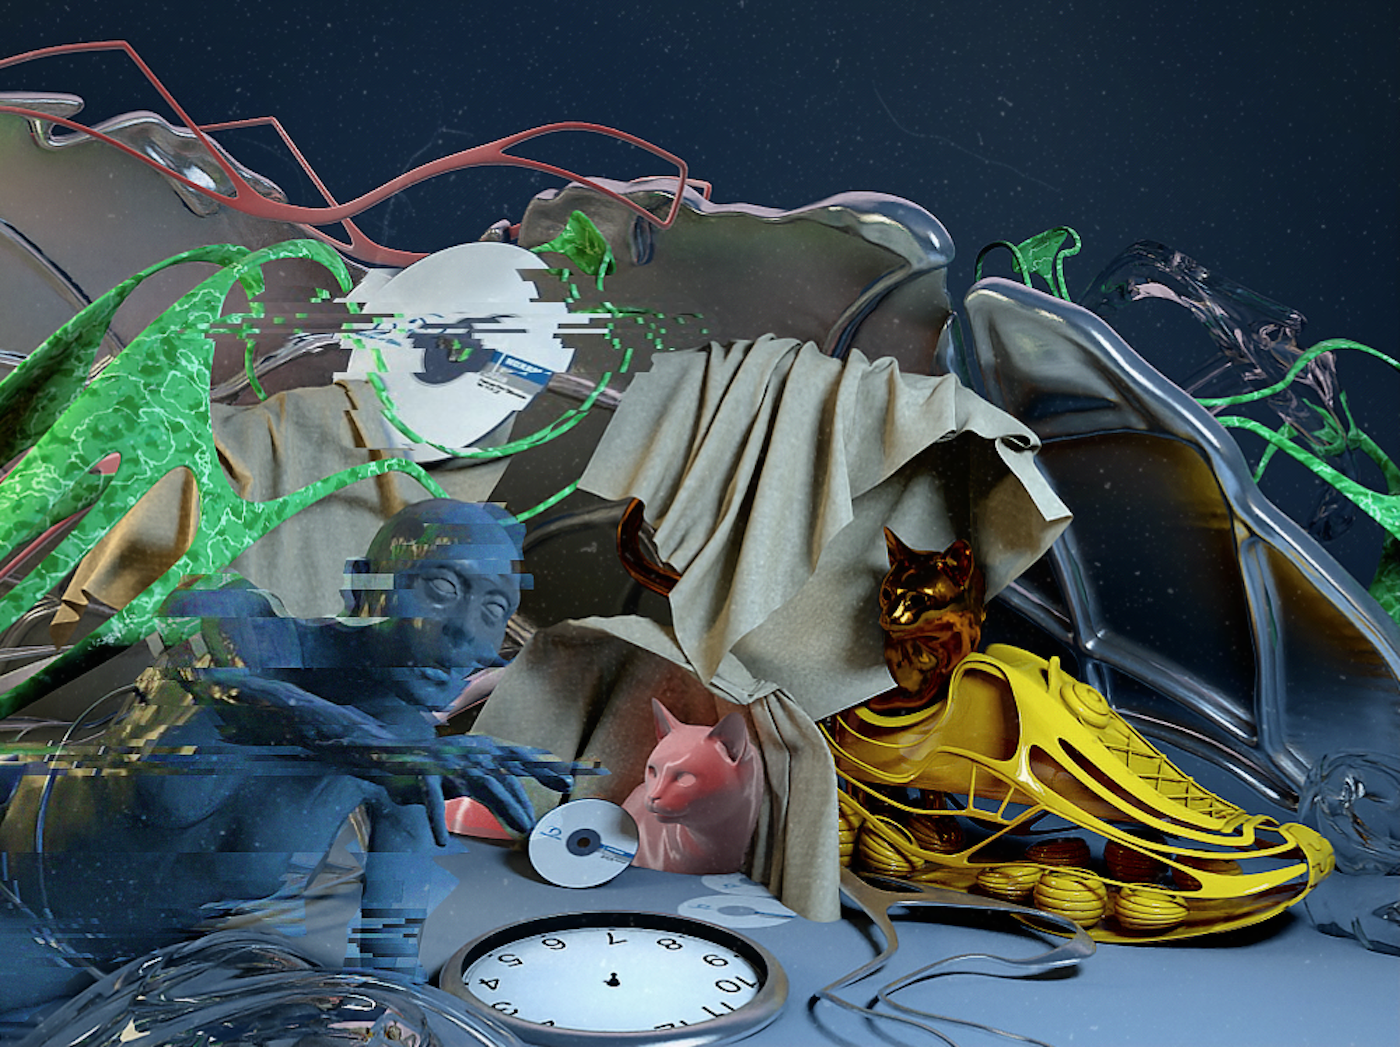 Russian musician and artist Alexey Devyanin, known as Pixelord, is one of today's most popular NFT artists and collaborators. Combining his background in music, 3D designer, and visual art, he creates unique virtual worlds to get lost in. (Work: Pixelord)